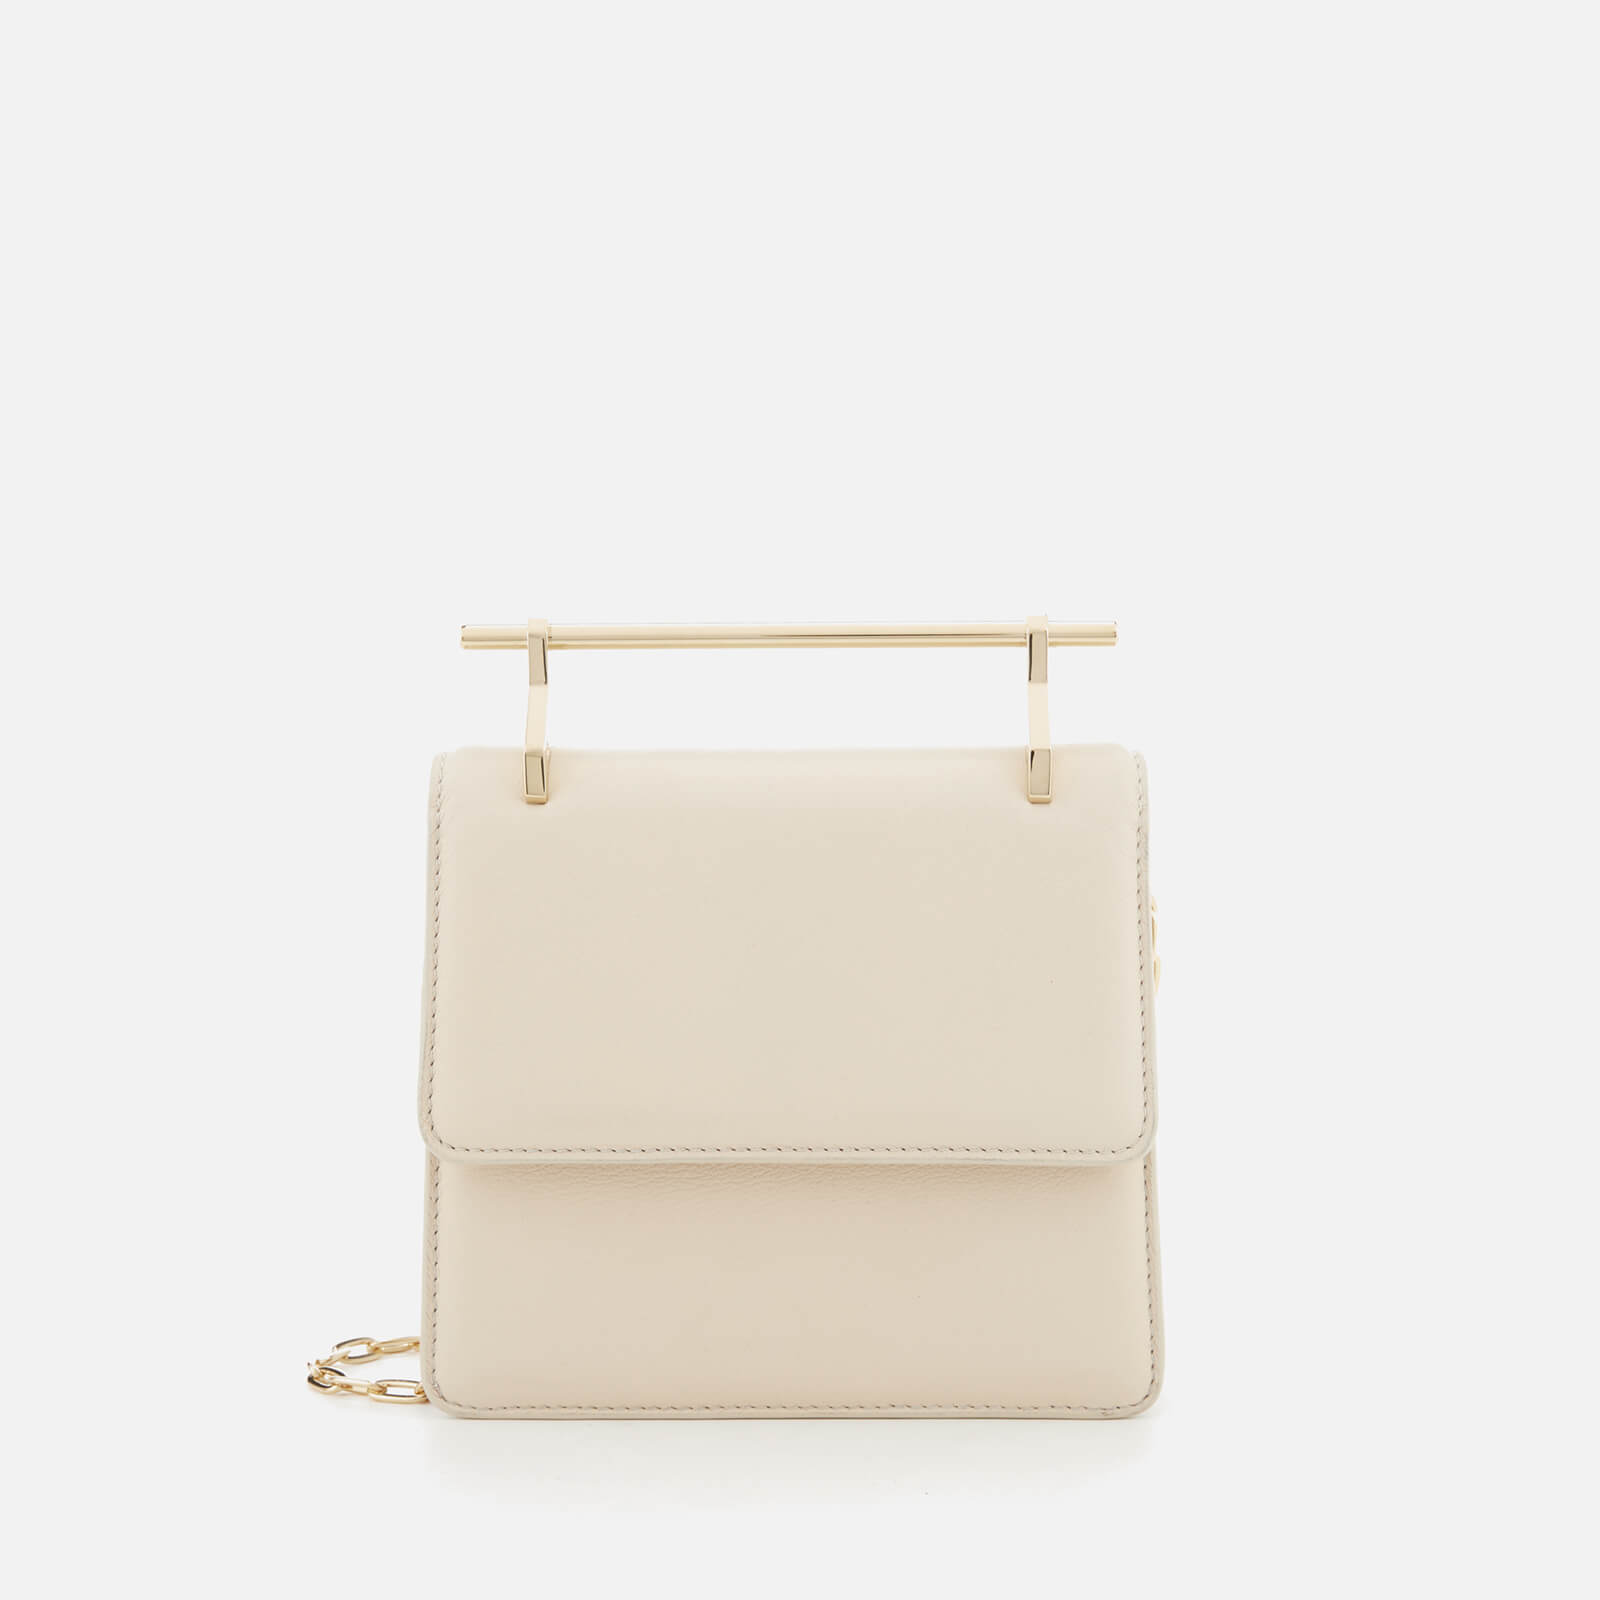 90844801f3f8 M2Malletier Women s Mini Collectionneuse Single Hardware Bag - Ivory Single  Gold Chain - Free UK Delivery over £50